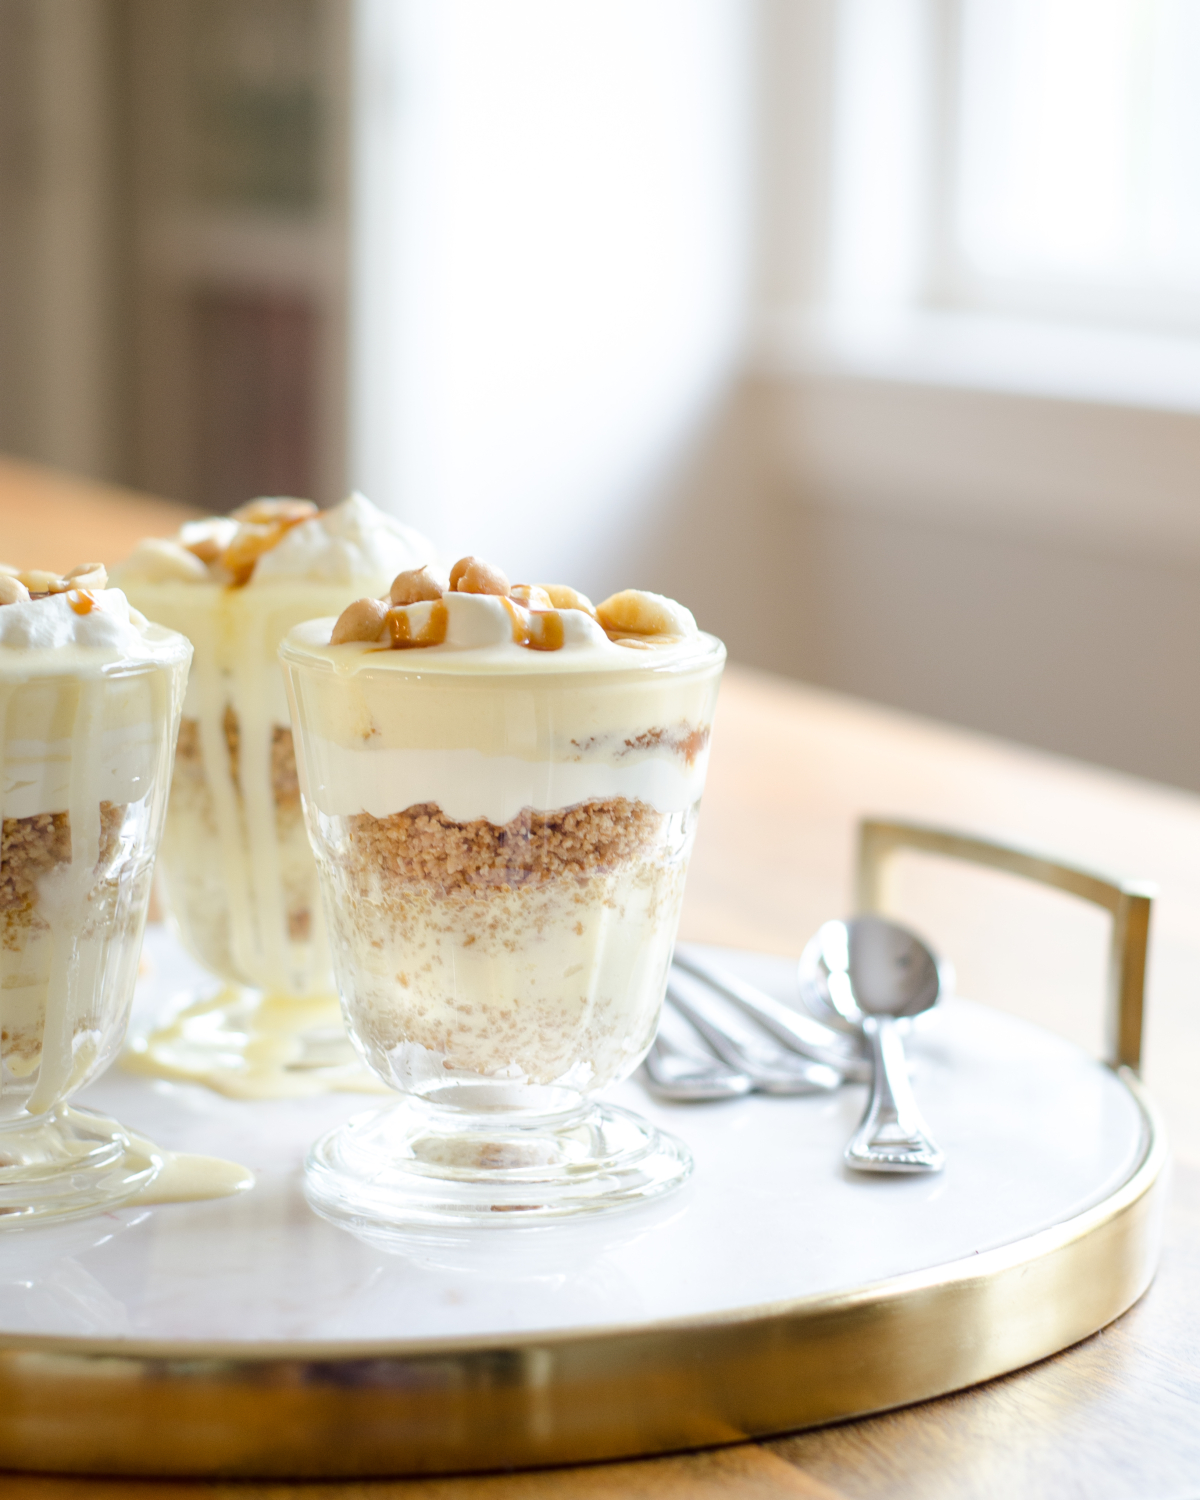 Gluten free banana cream pie recipe, in parfait form! Gorgeous individual dessert servings topped with salted caramel and peanuts for a banana cream pie like you've never tasted before!